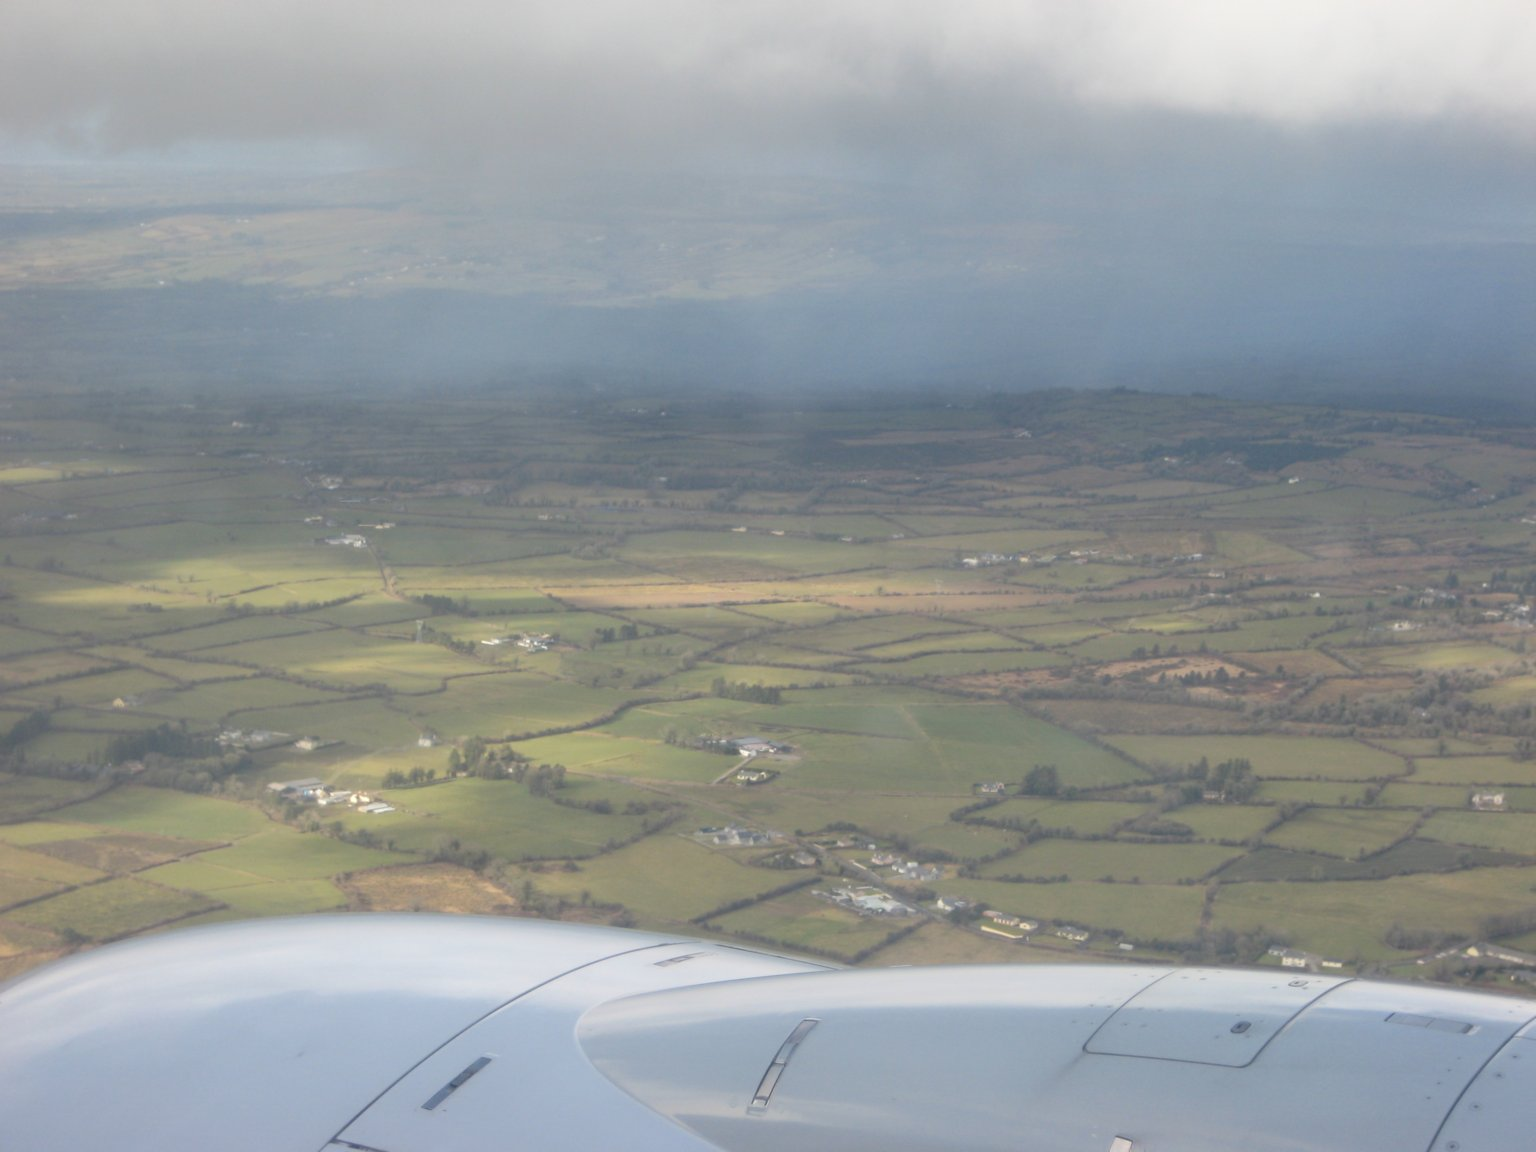 Ireland from the plane